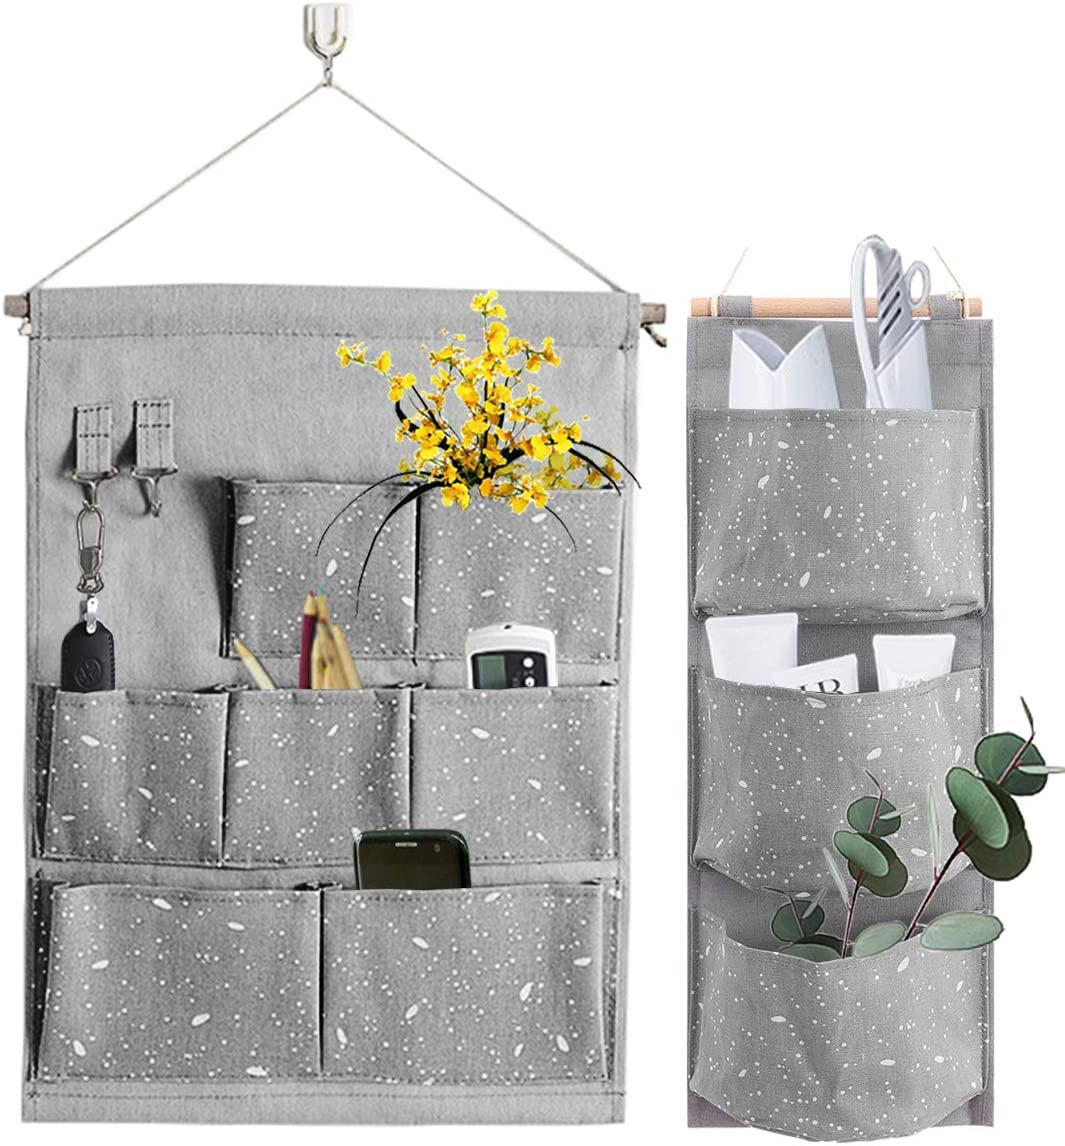 YCH Wall Hanging Storage Bag Waterproof Over The Door Closet Organizer Linen Fabric Hanging Pocket Organizer with 3 Remote-sized Width Pockets for Bedroom Bathroom Grey